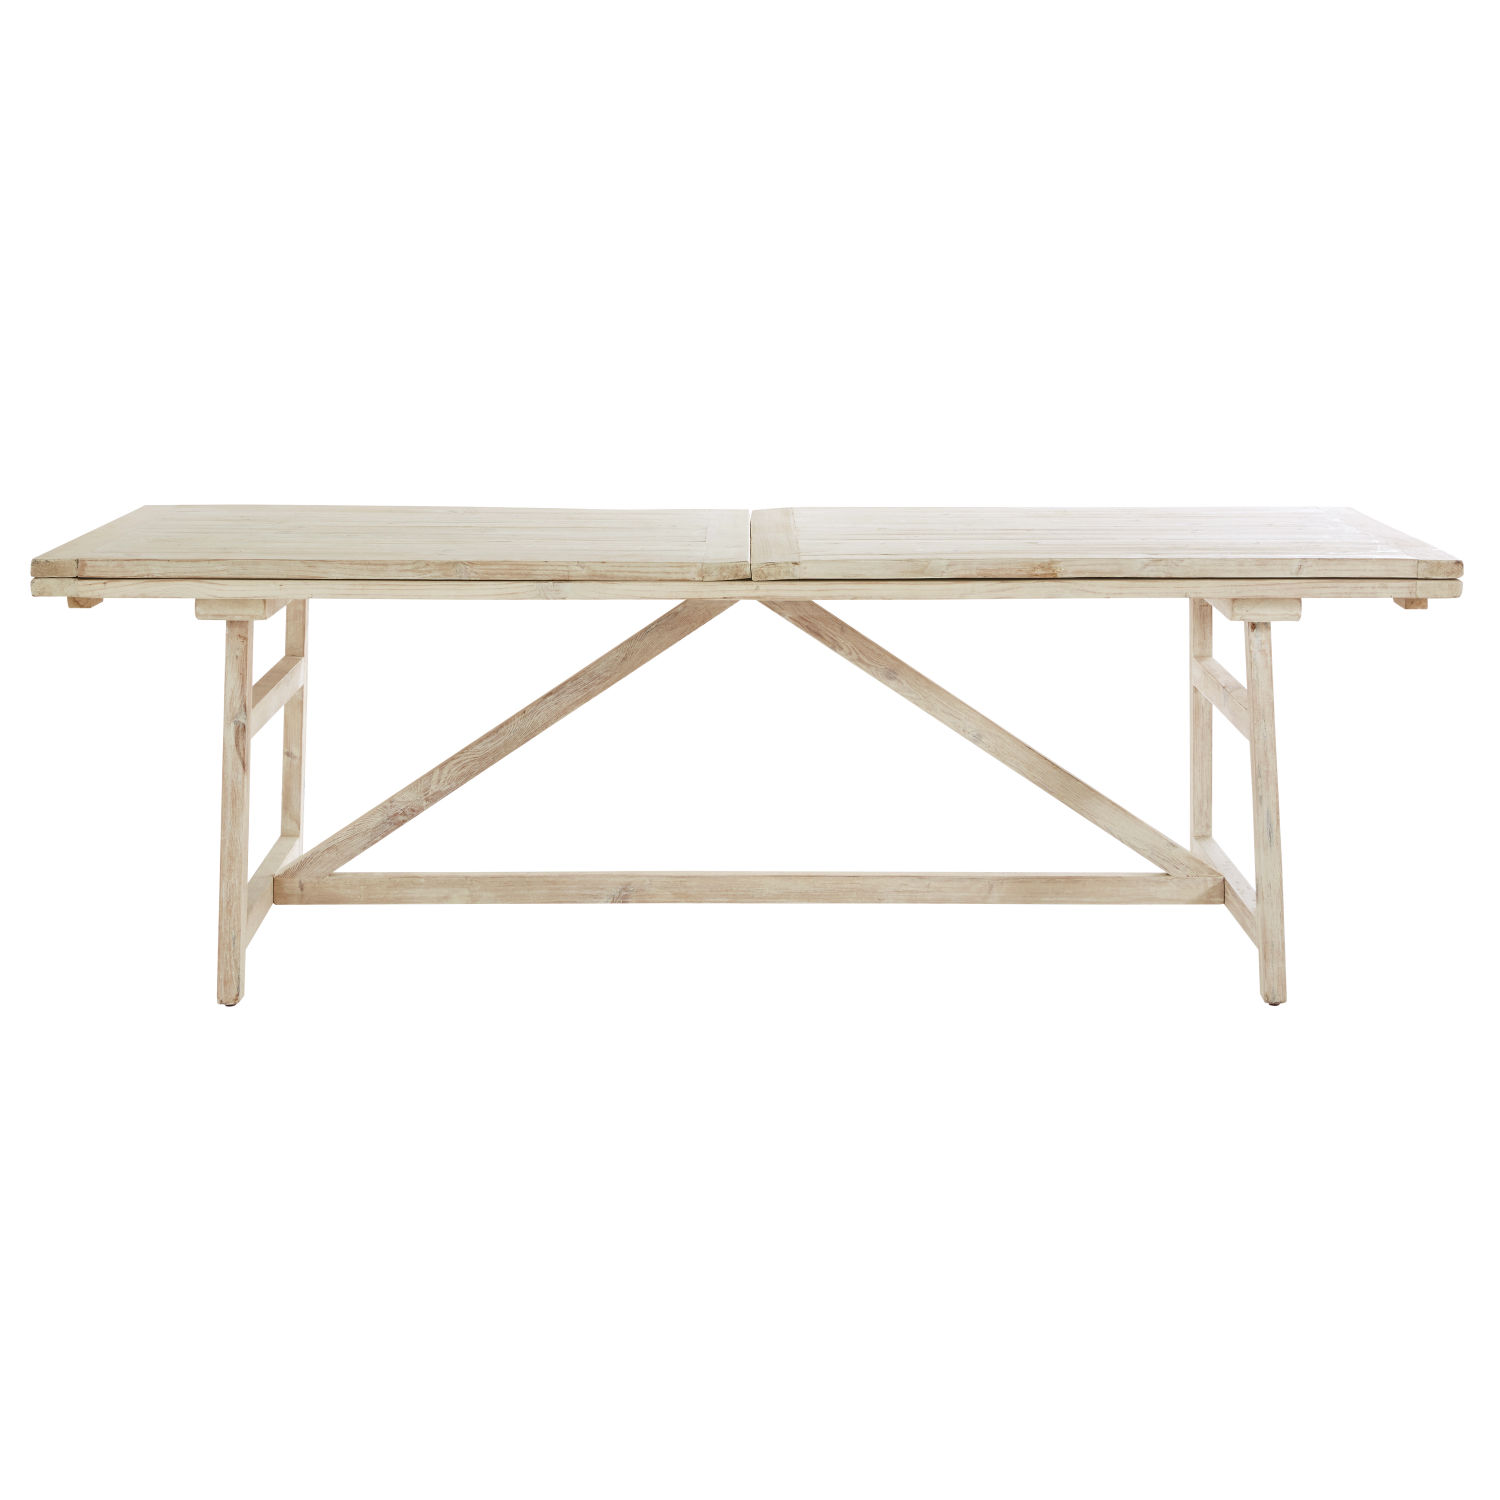 Table Extensible 16 Personnes Table Extensible 16 Personnes